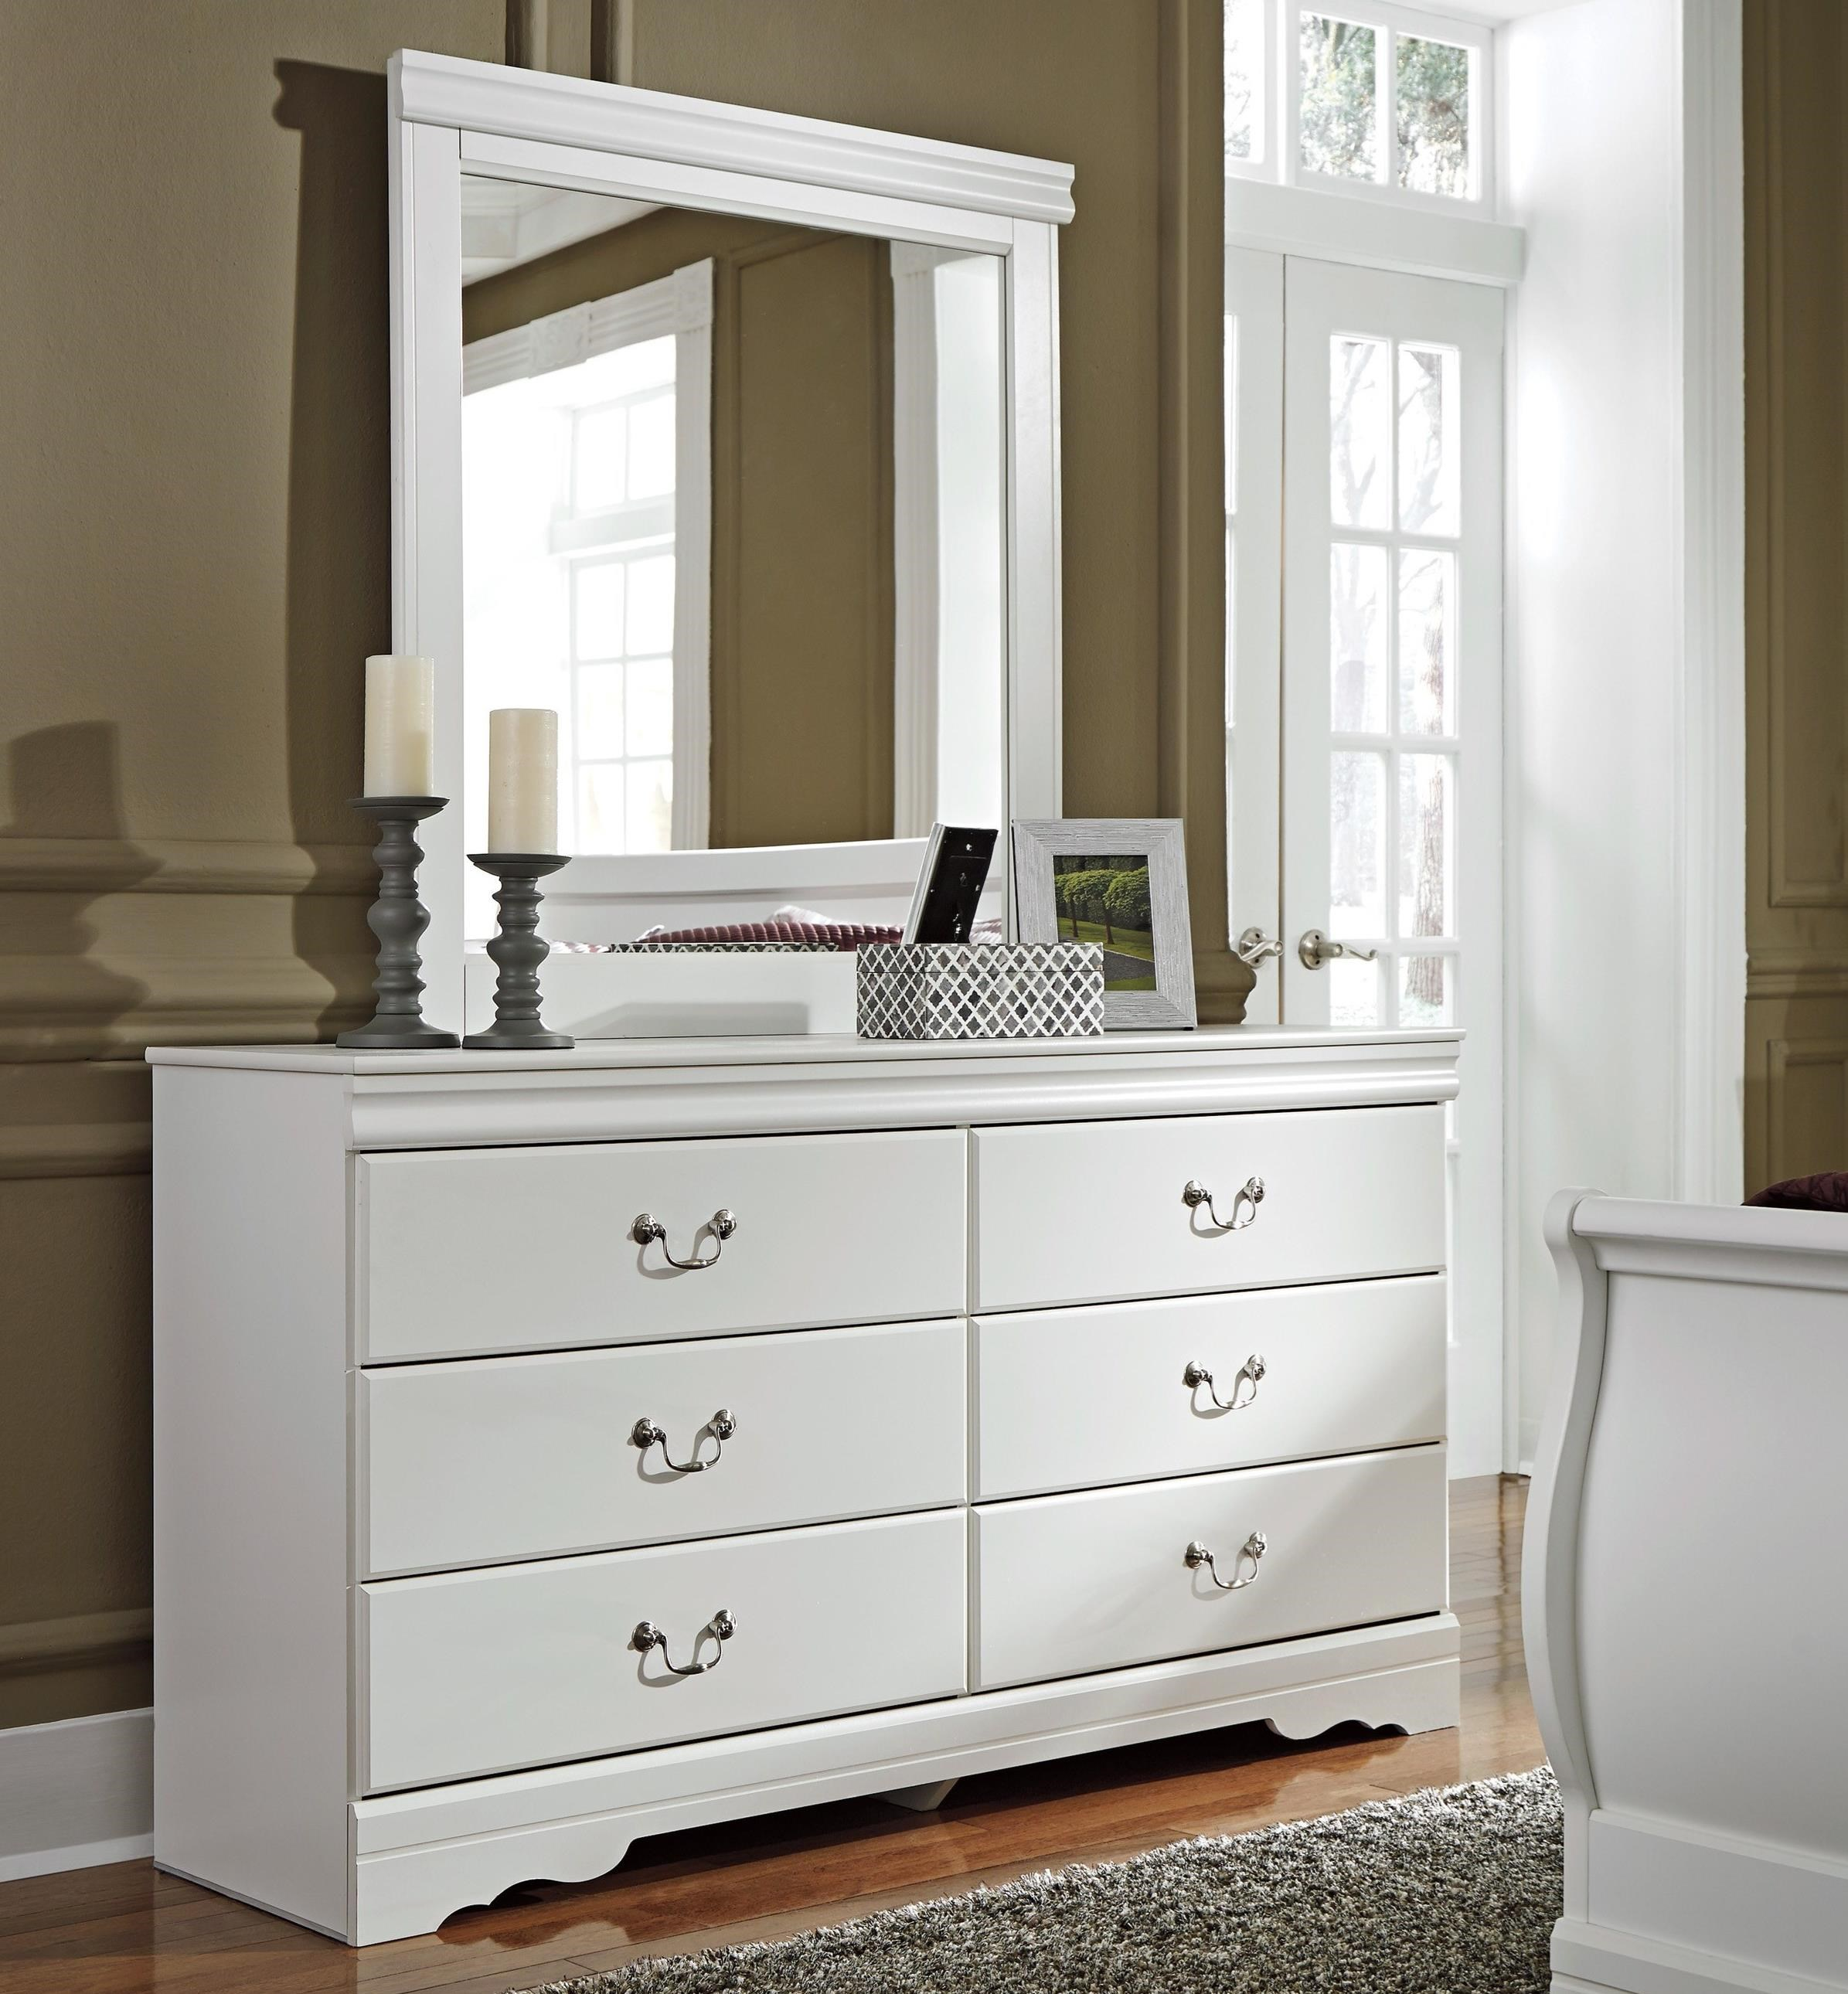 Anarasia Dresser and Mirror Combination by Signature Design by Ashley at Smart Buy Furniture